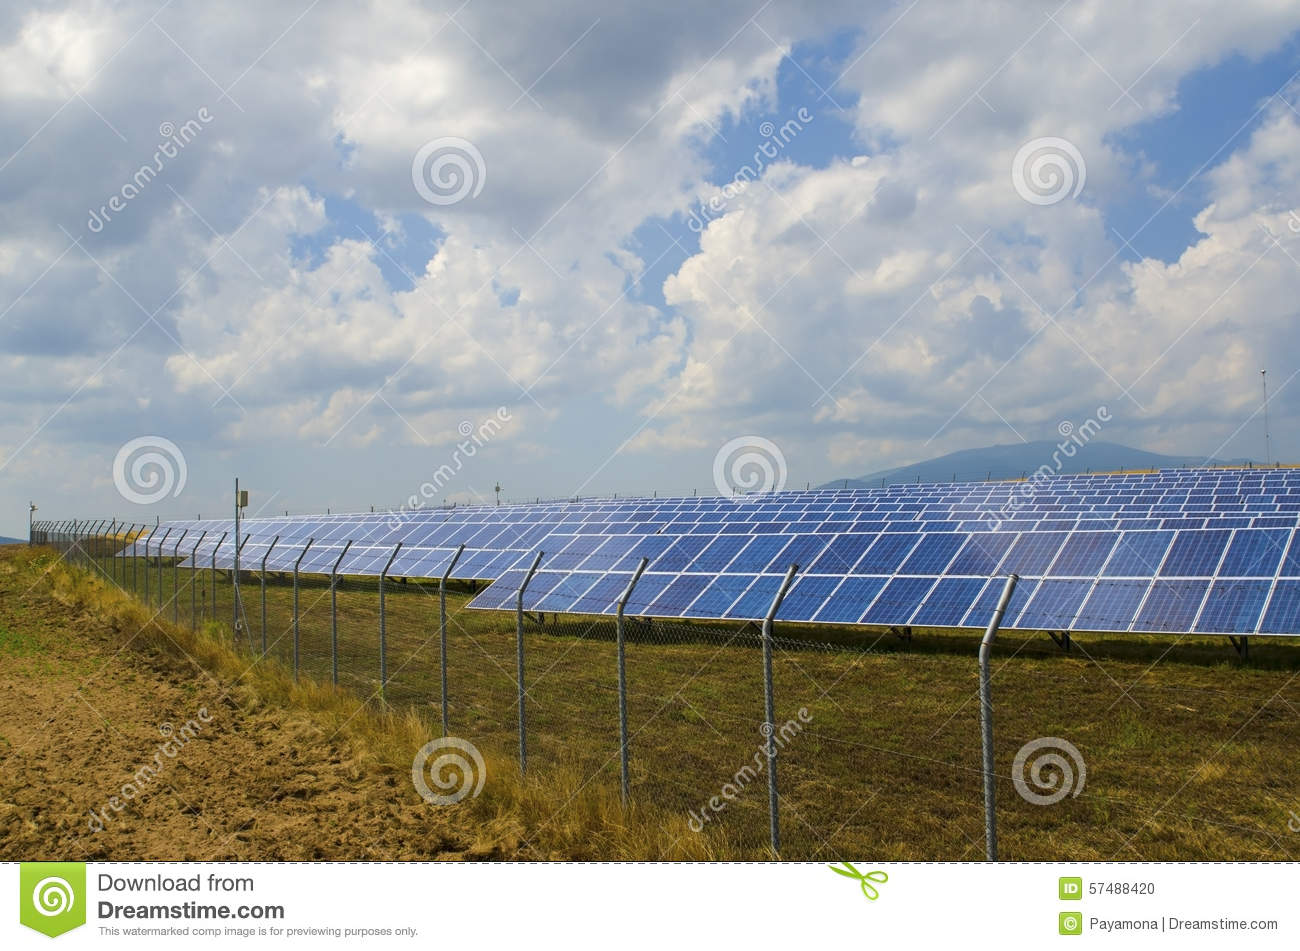 Lots Of Solar Panels Behind Rusty Barbed Wire Stock Photo - Image of ...